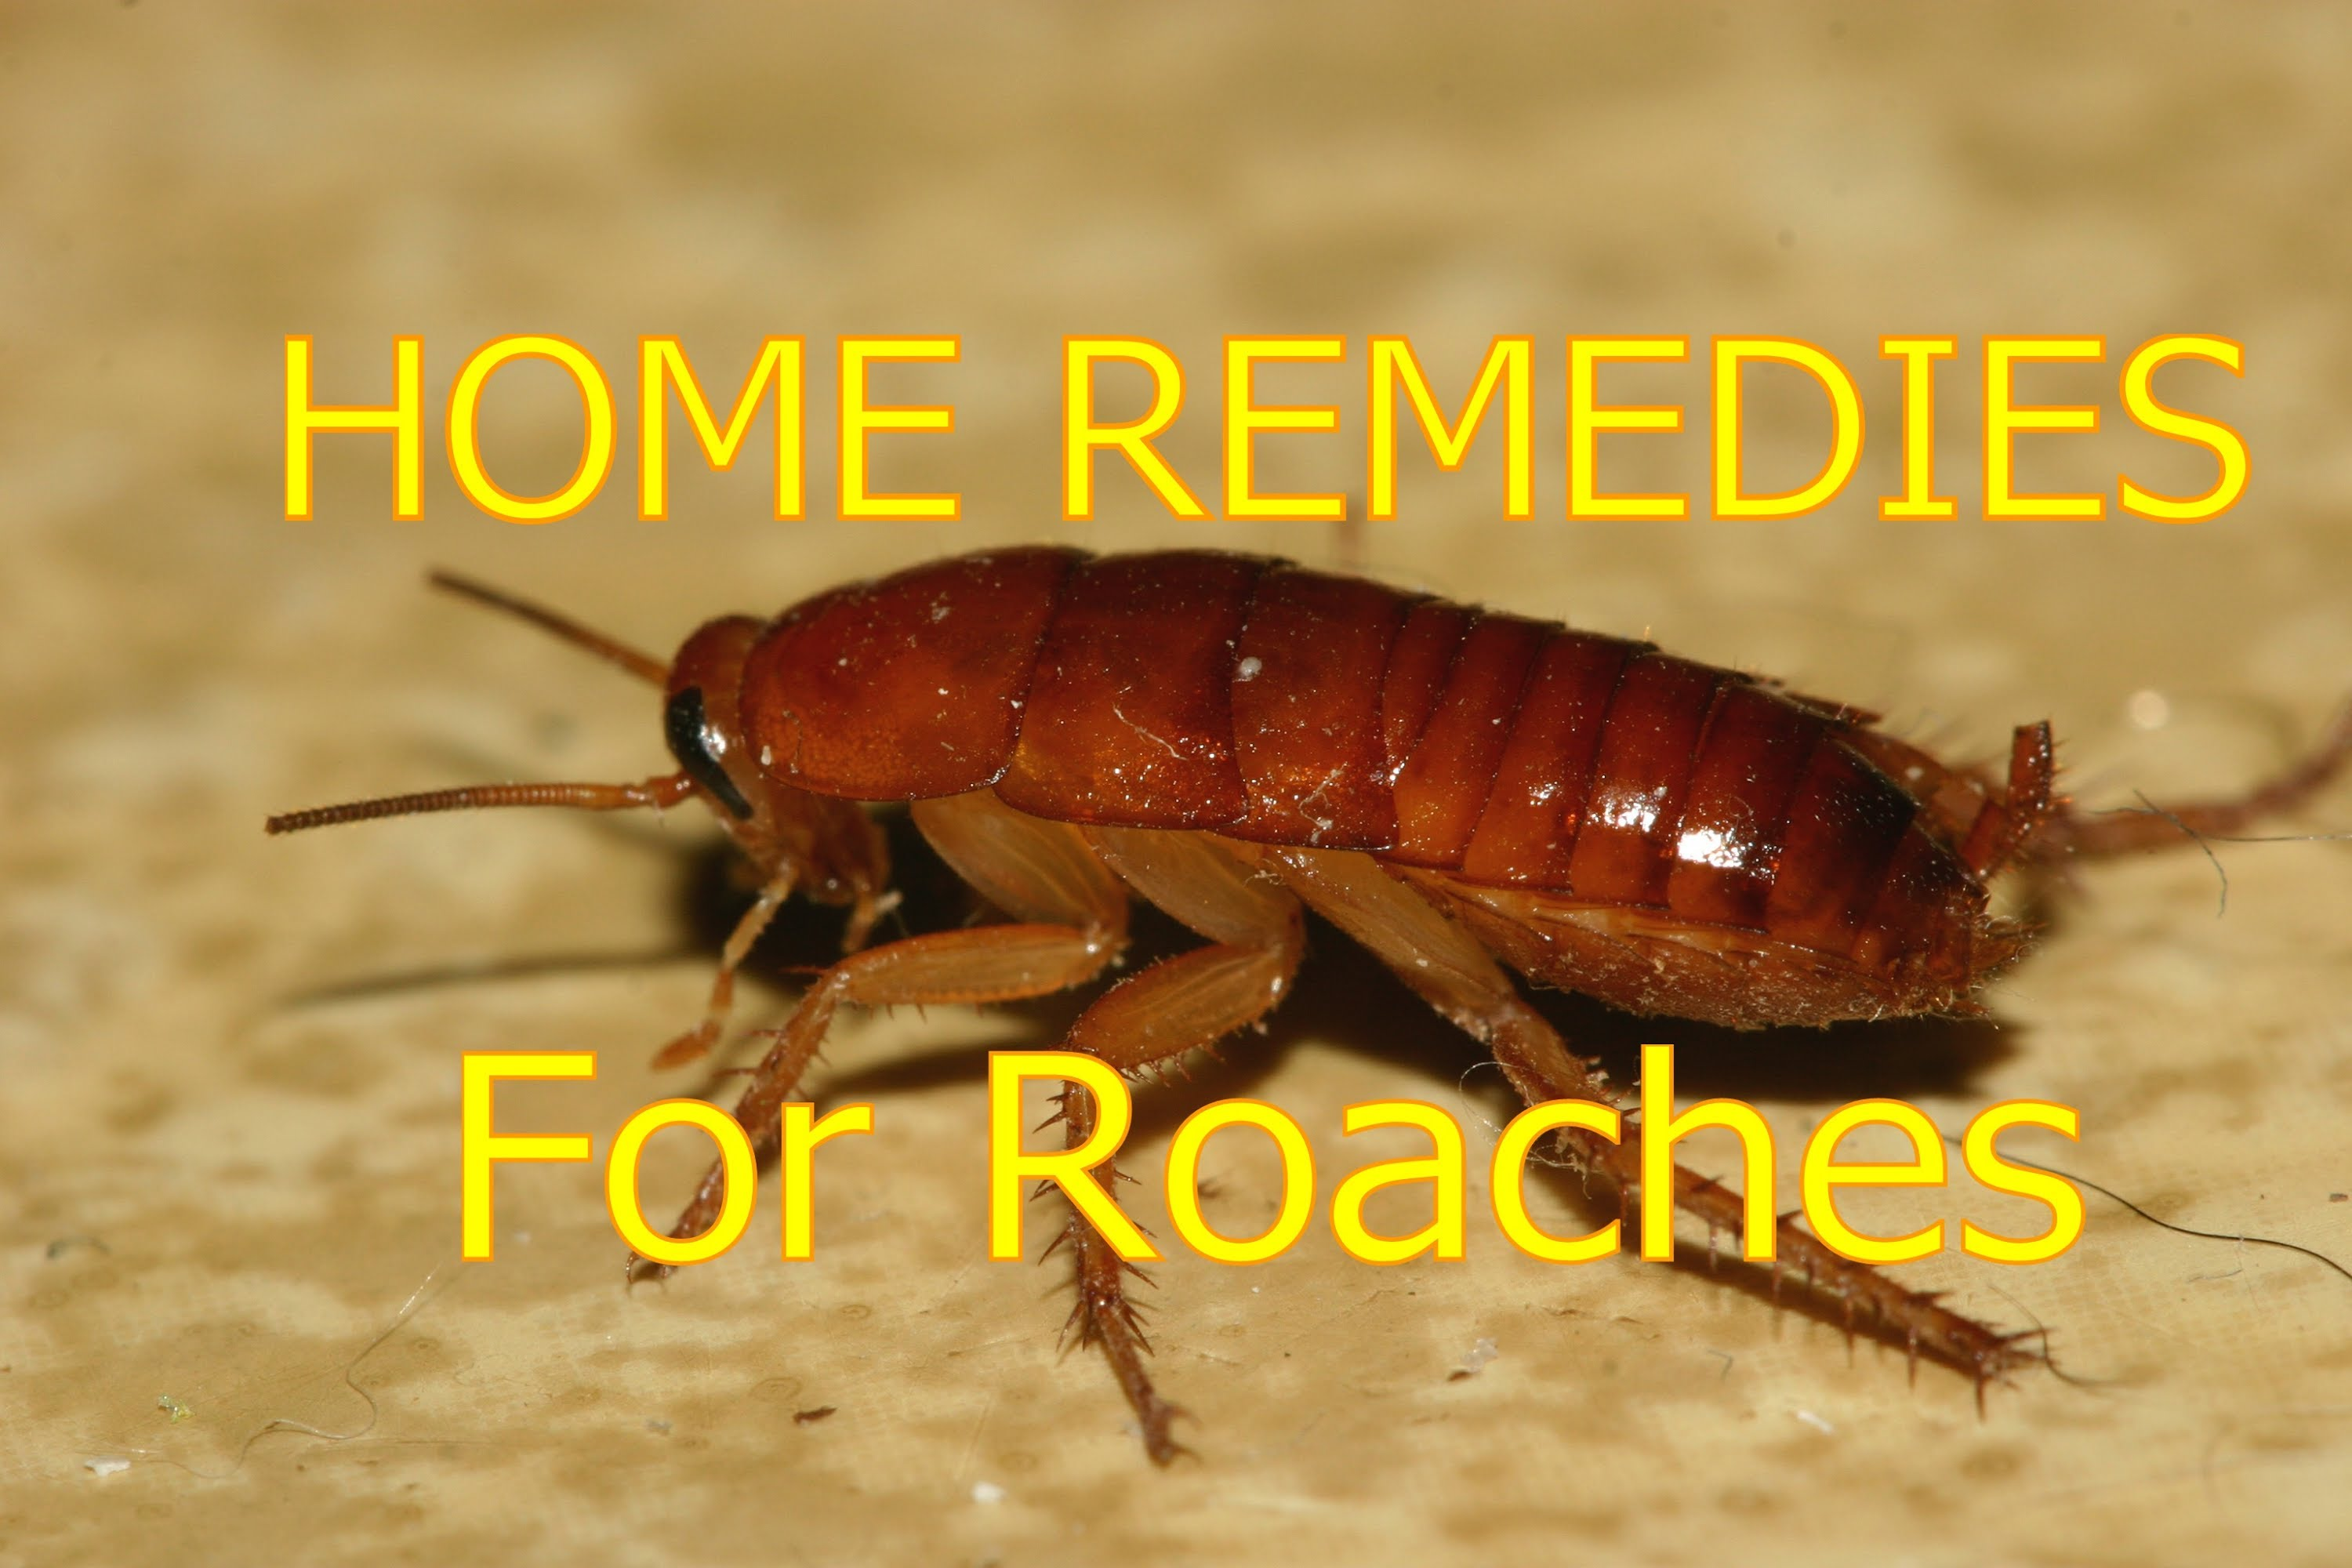 What are the most effective home remedies for cockroaches in the kitchen?